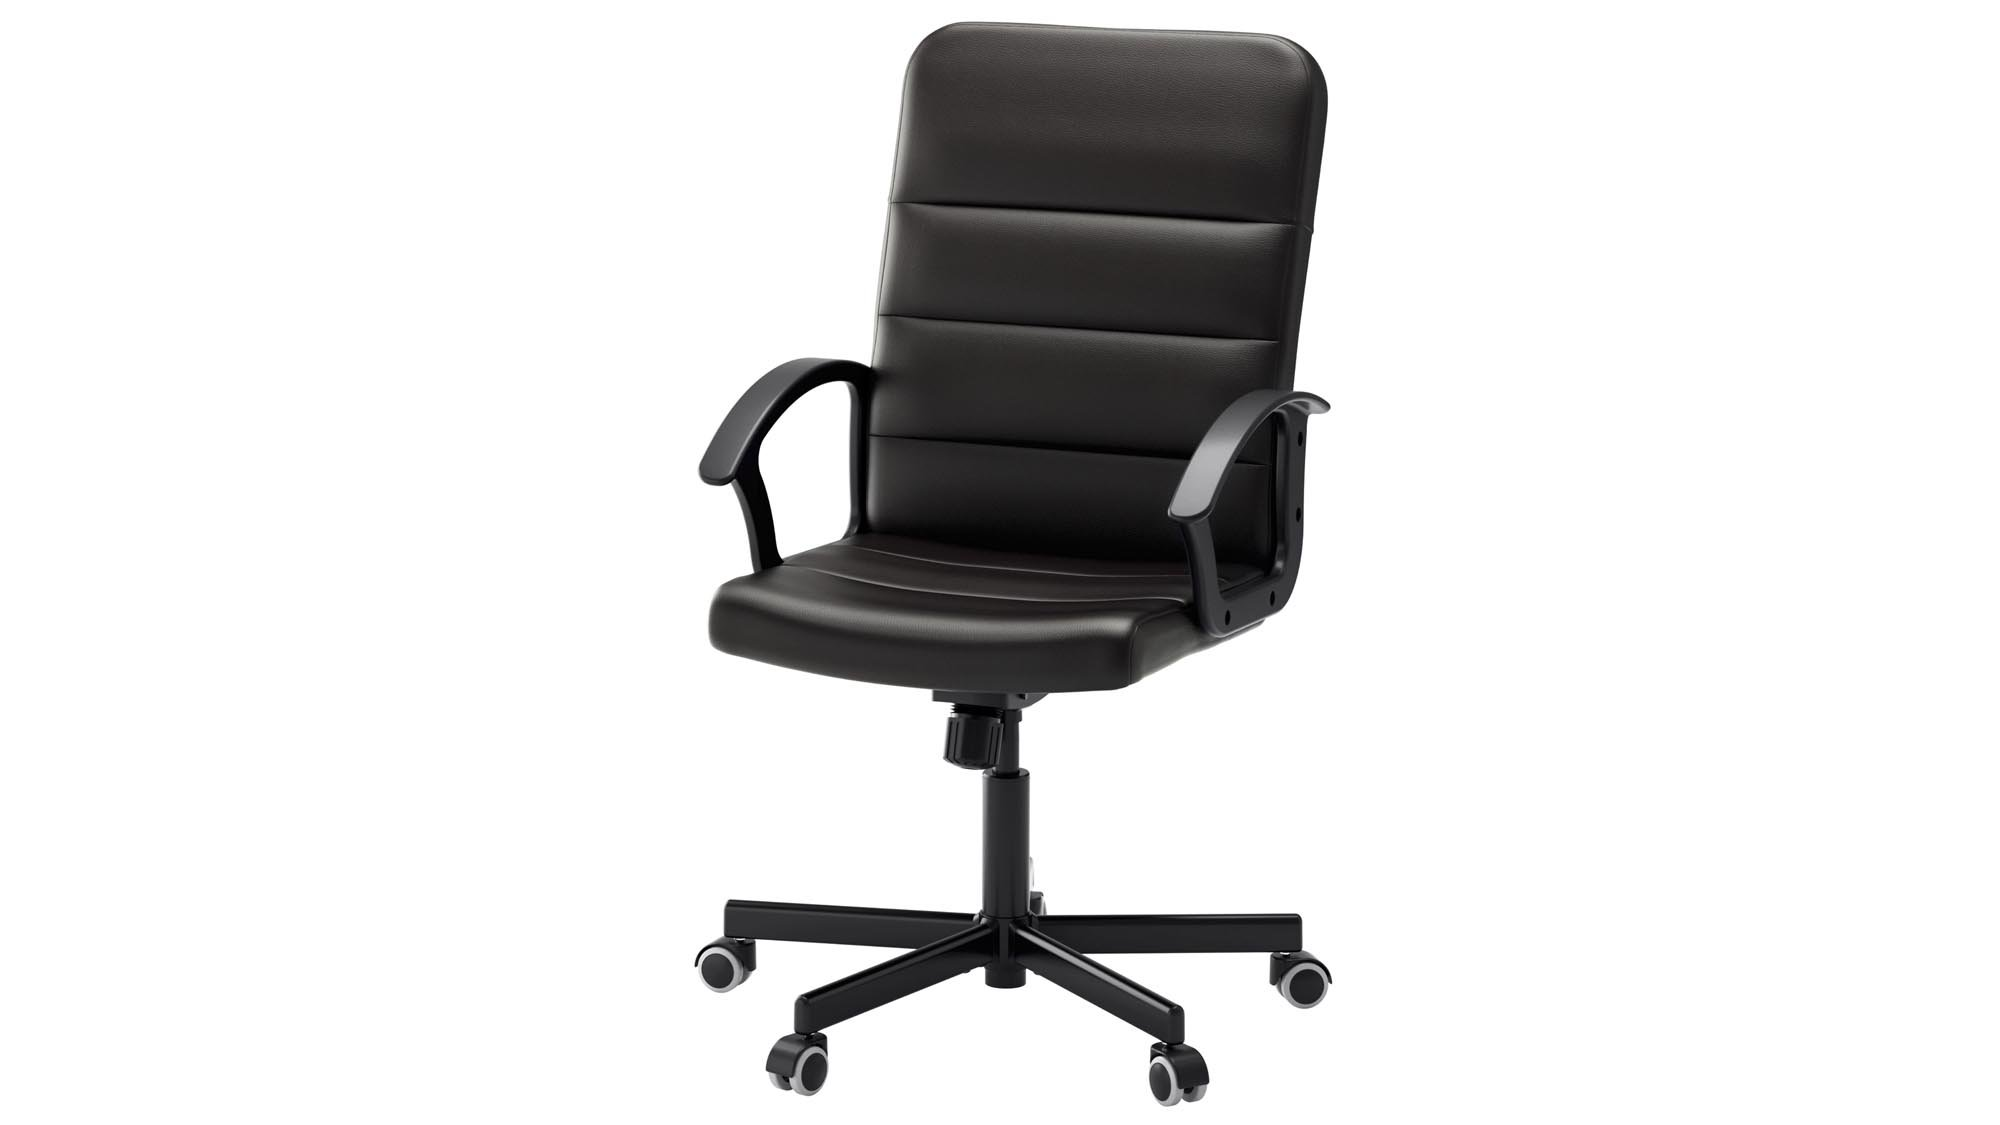 best office chair 2018 style comfort and adjustability from as rh expertreviews co uk IKEA Computer Chair Chairs From IKEA